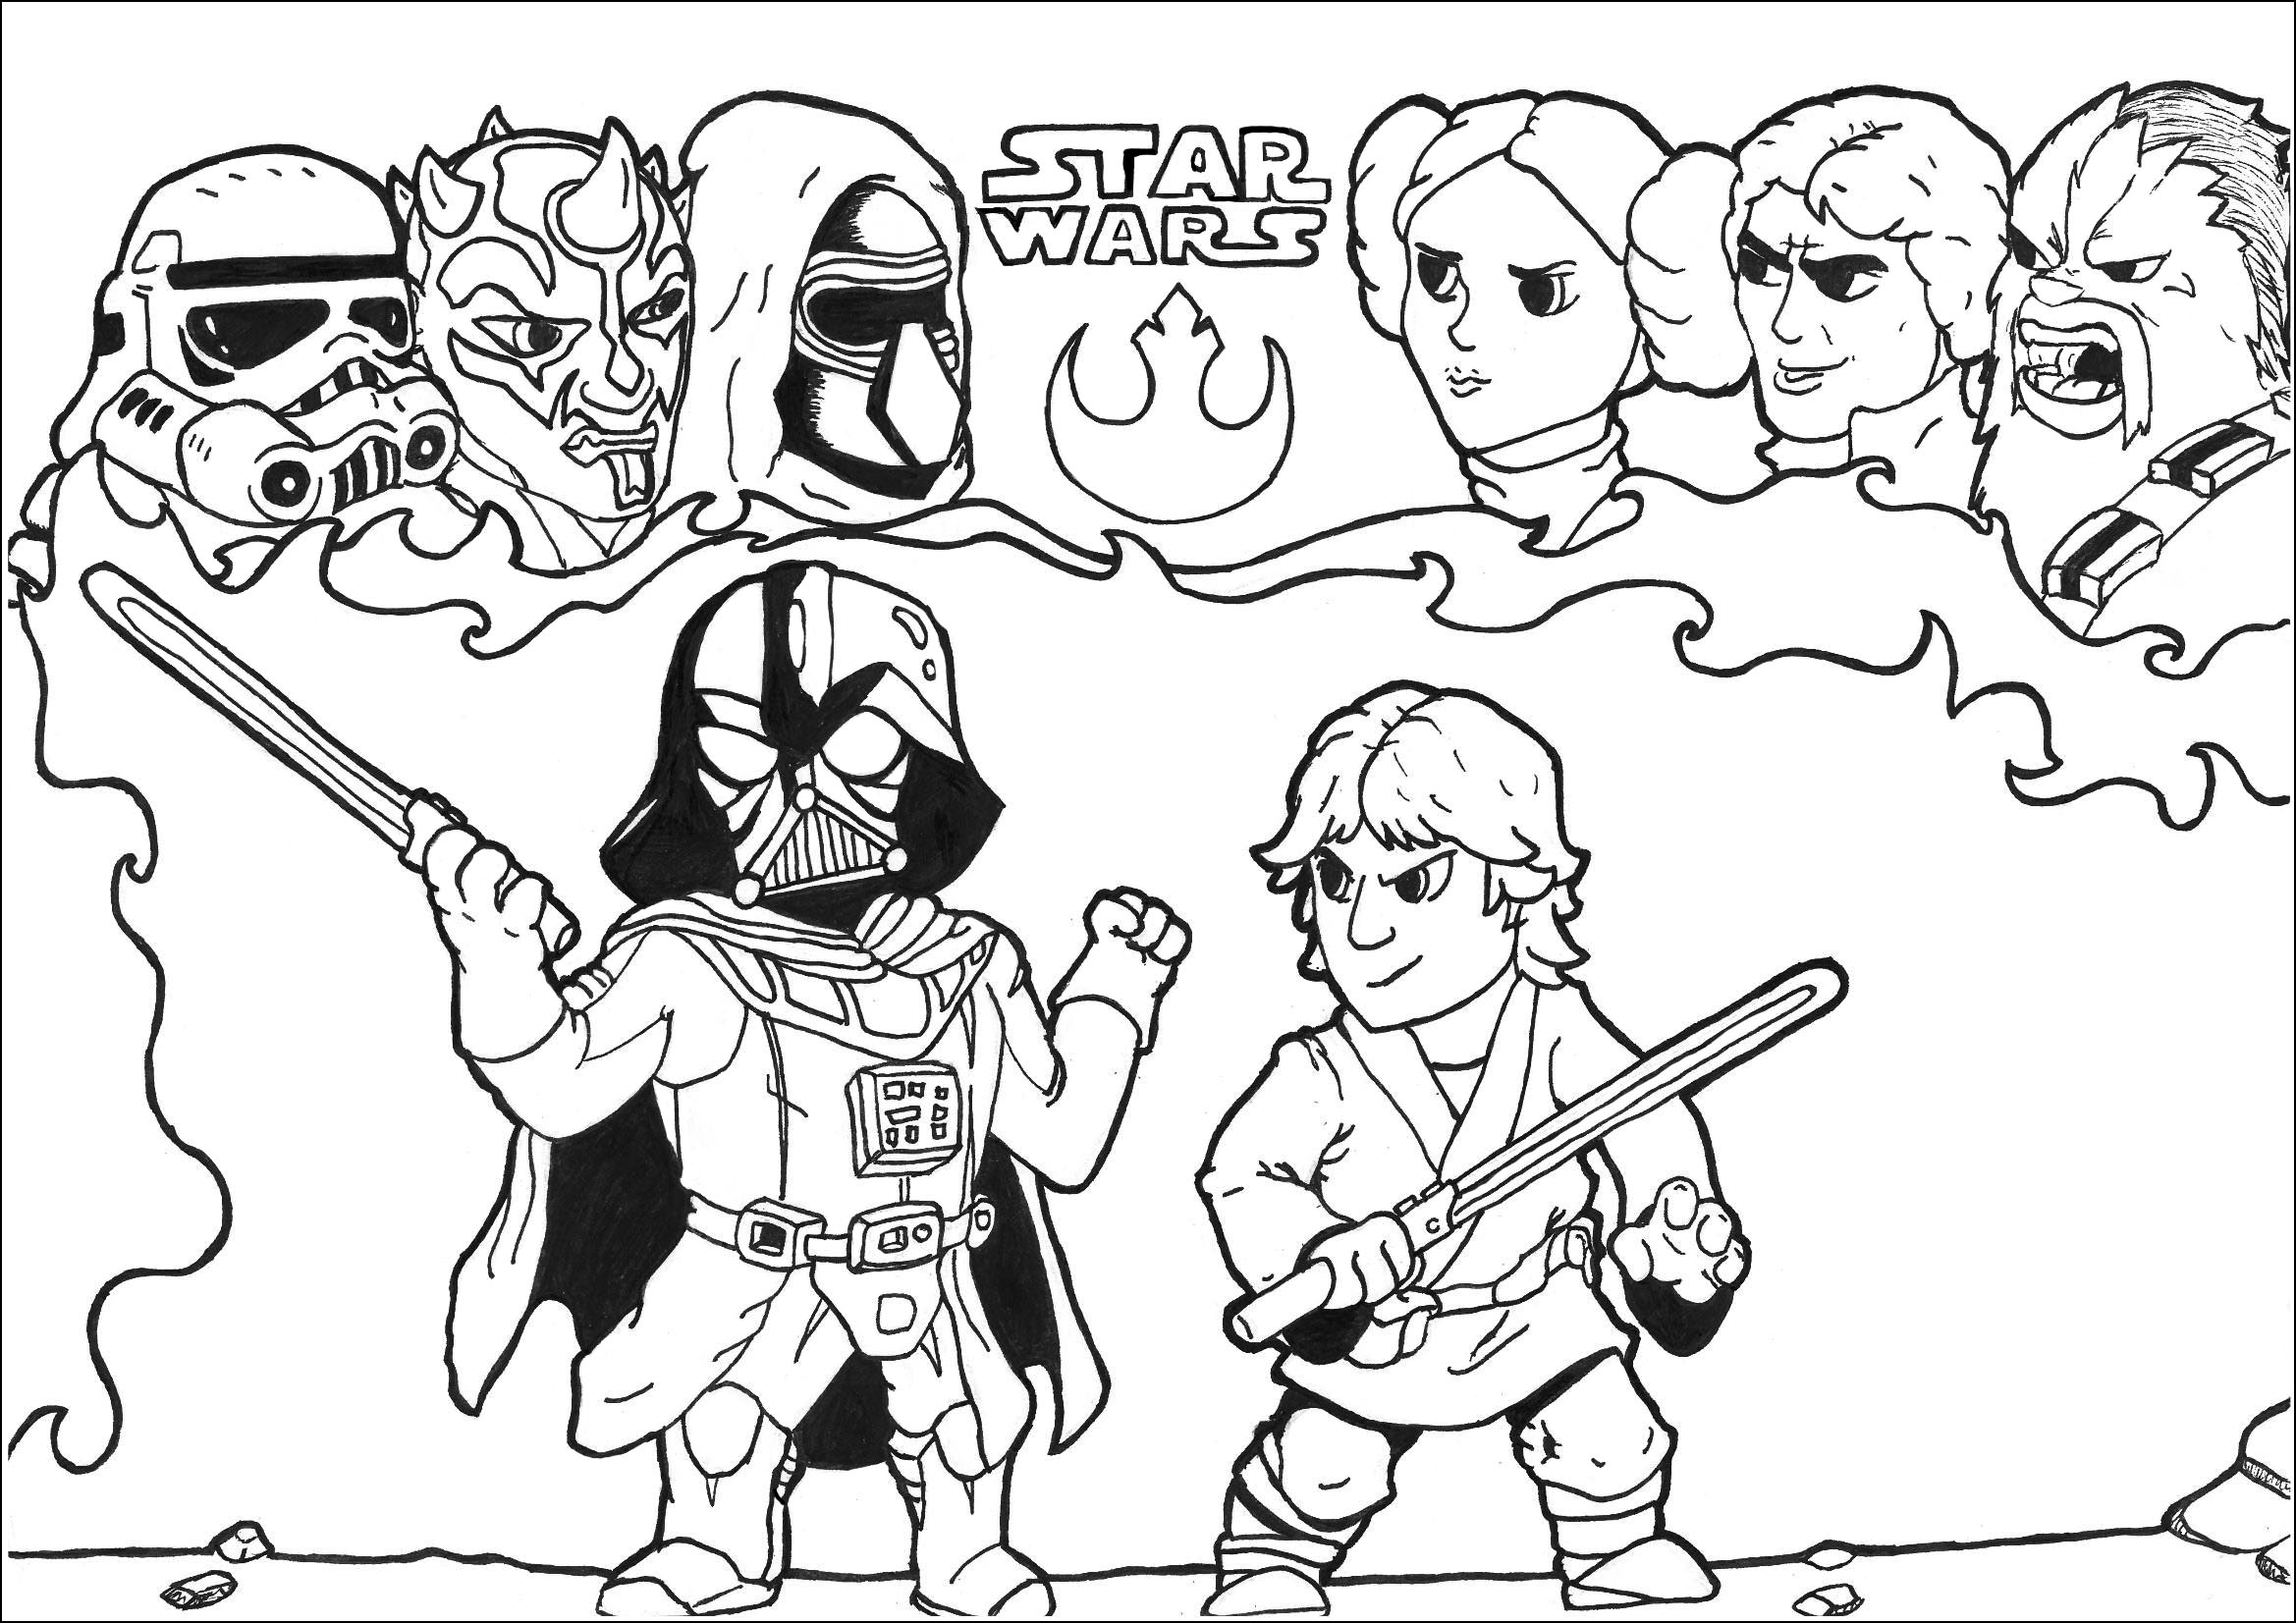 star wars pictures to print free star wars printable coloring pages bb 8 c2 b5 wars pictures to print star